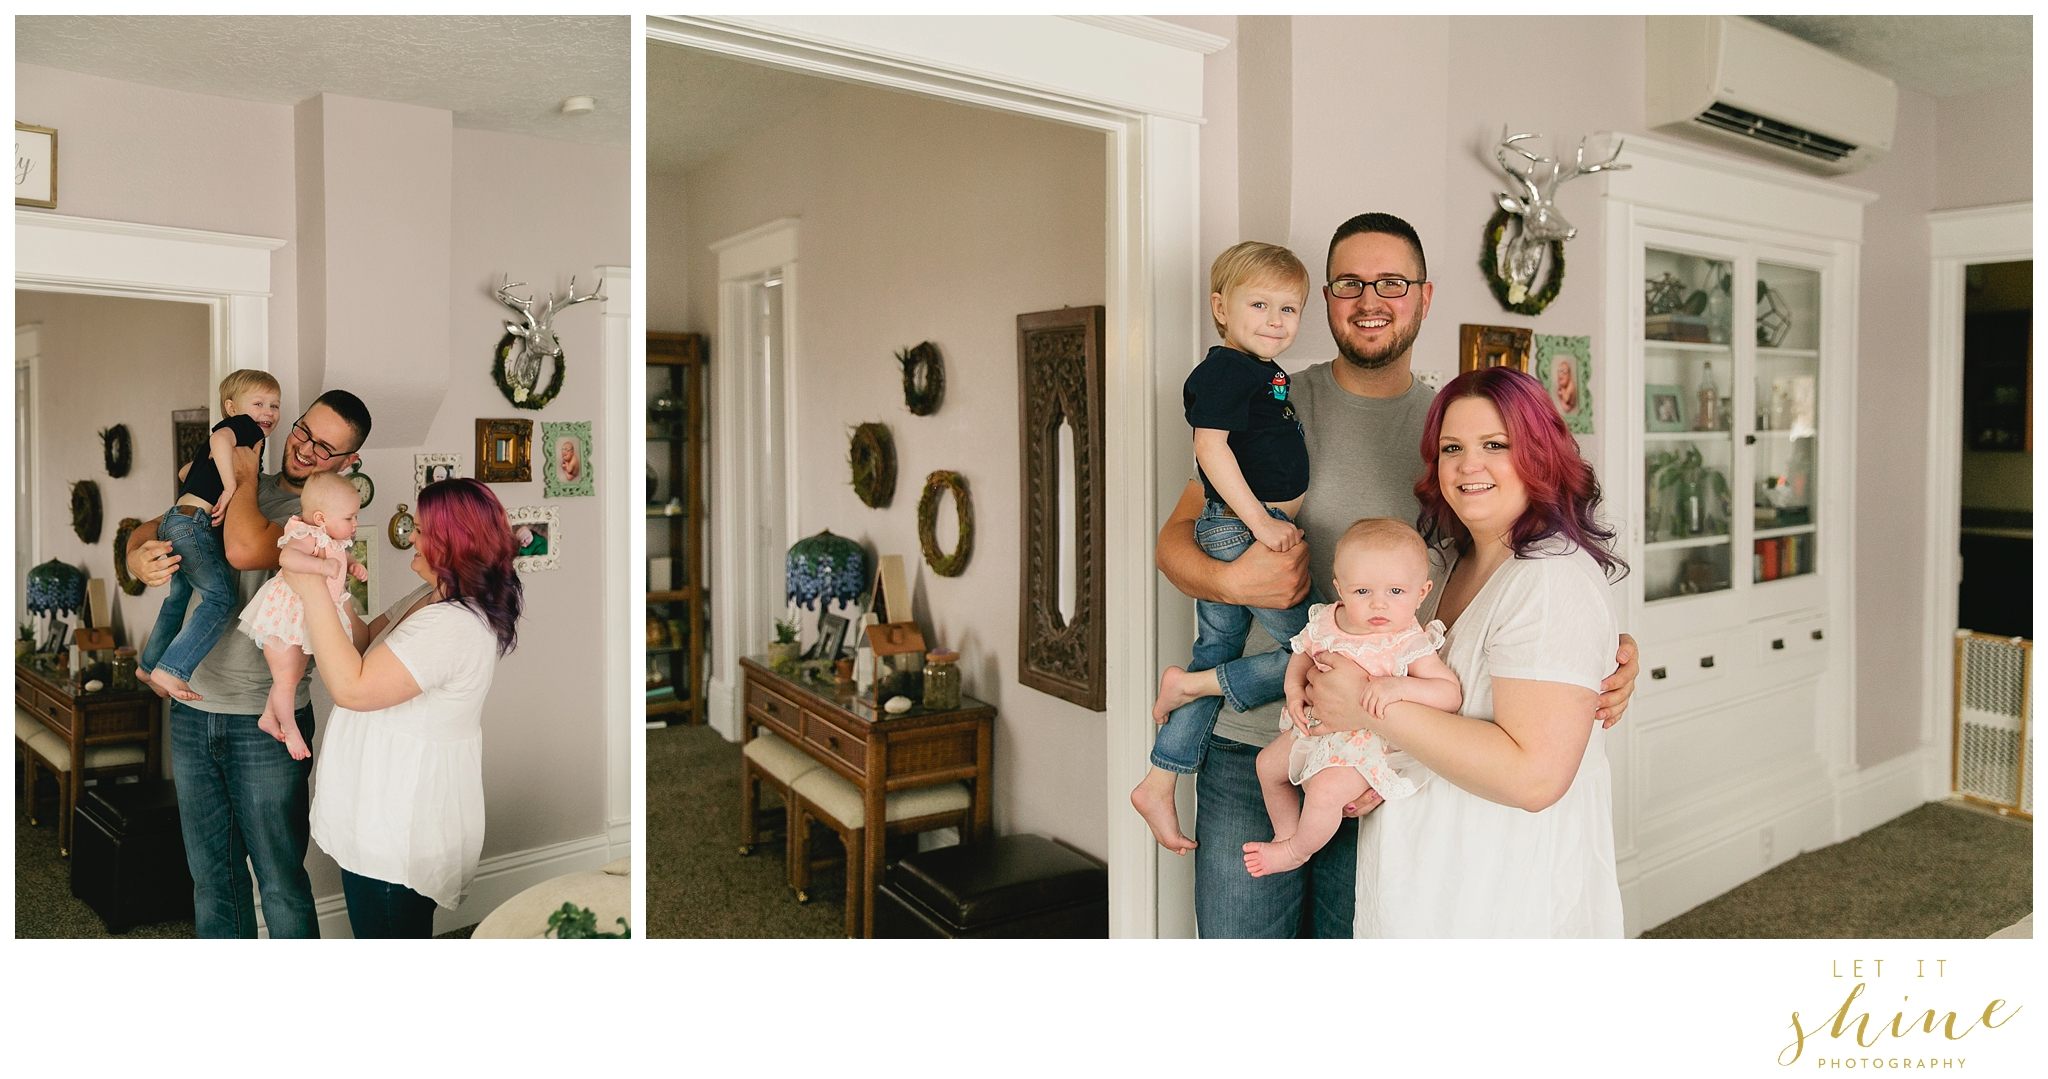 Lifestyle Family In Home Session Photographer Woodford-6934.jpg